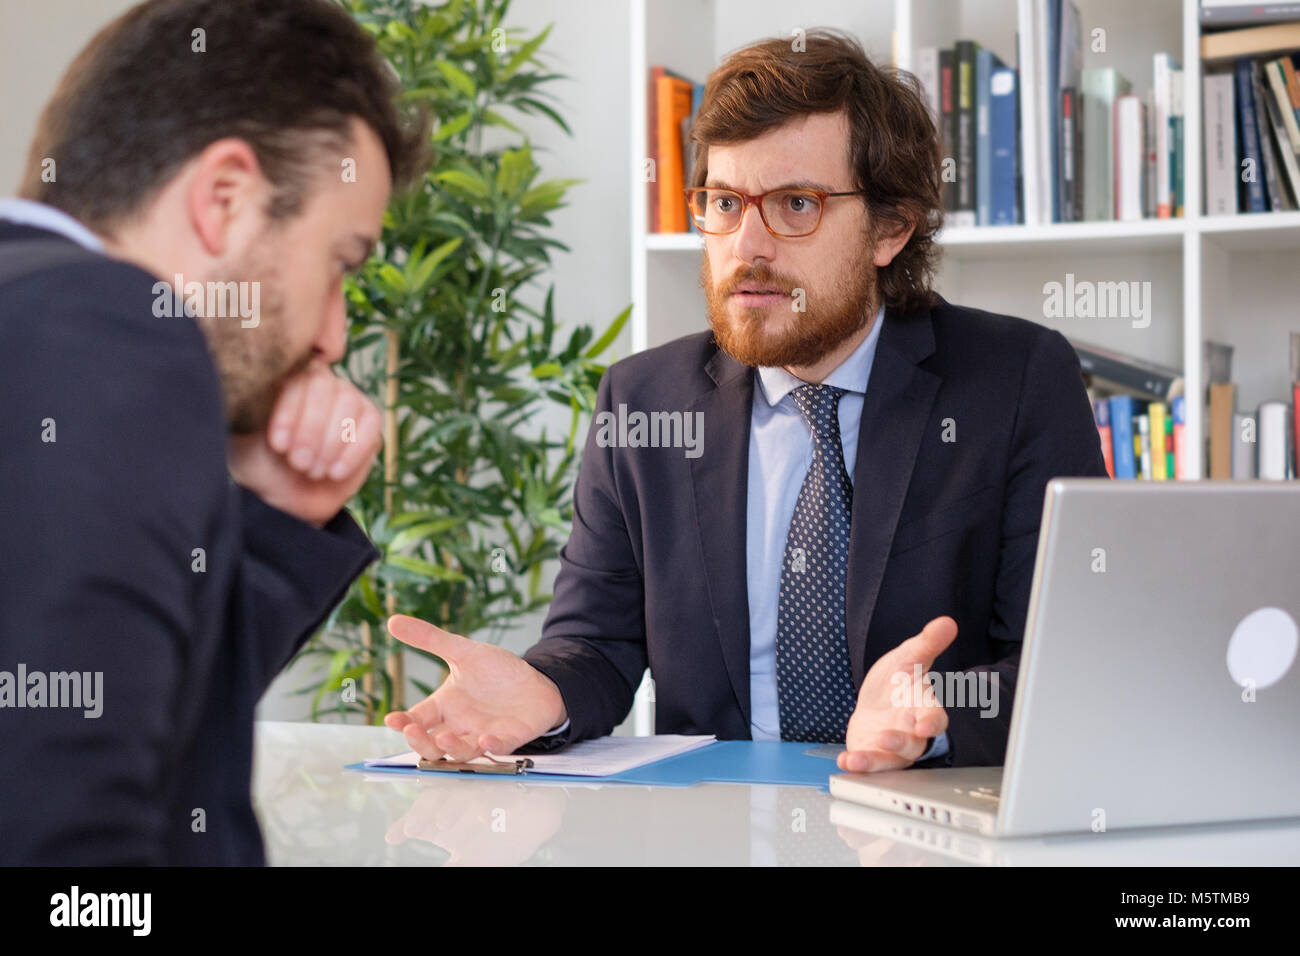 Businessmen arguing at workplace after deal failure and breaking contract - Stock Image